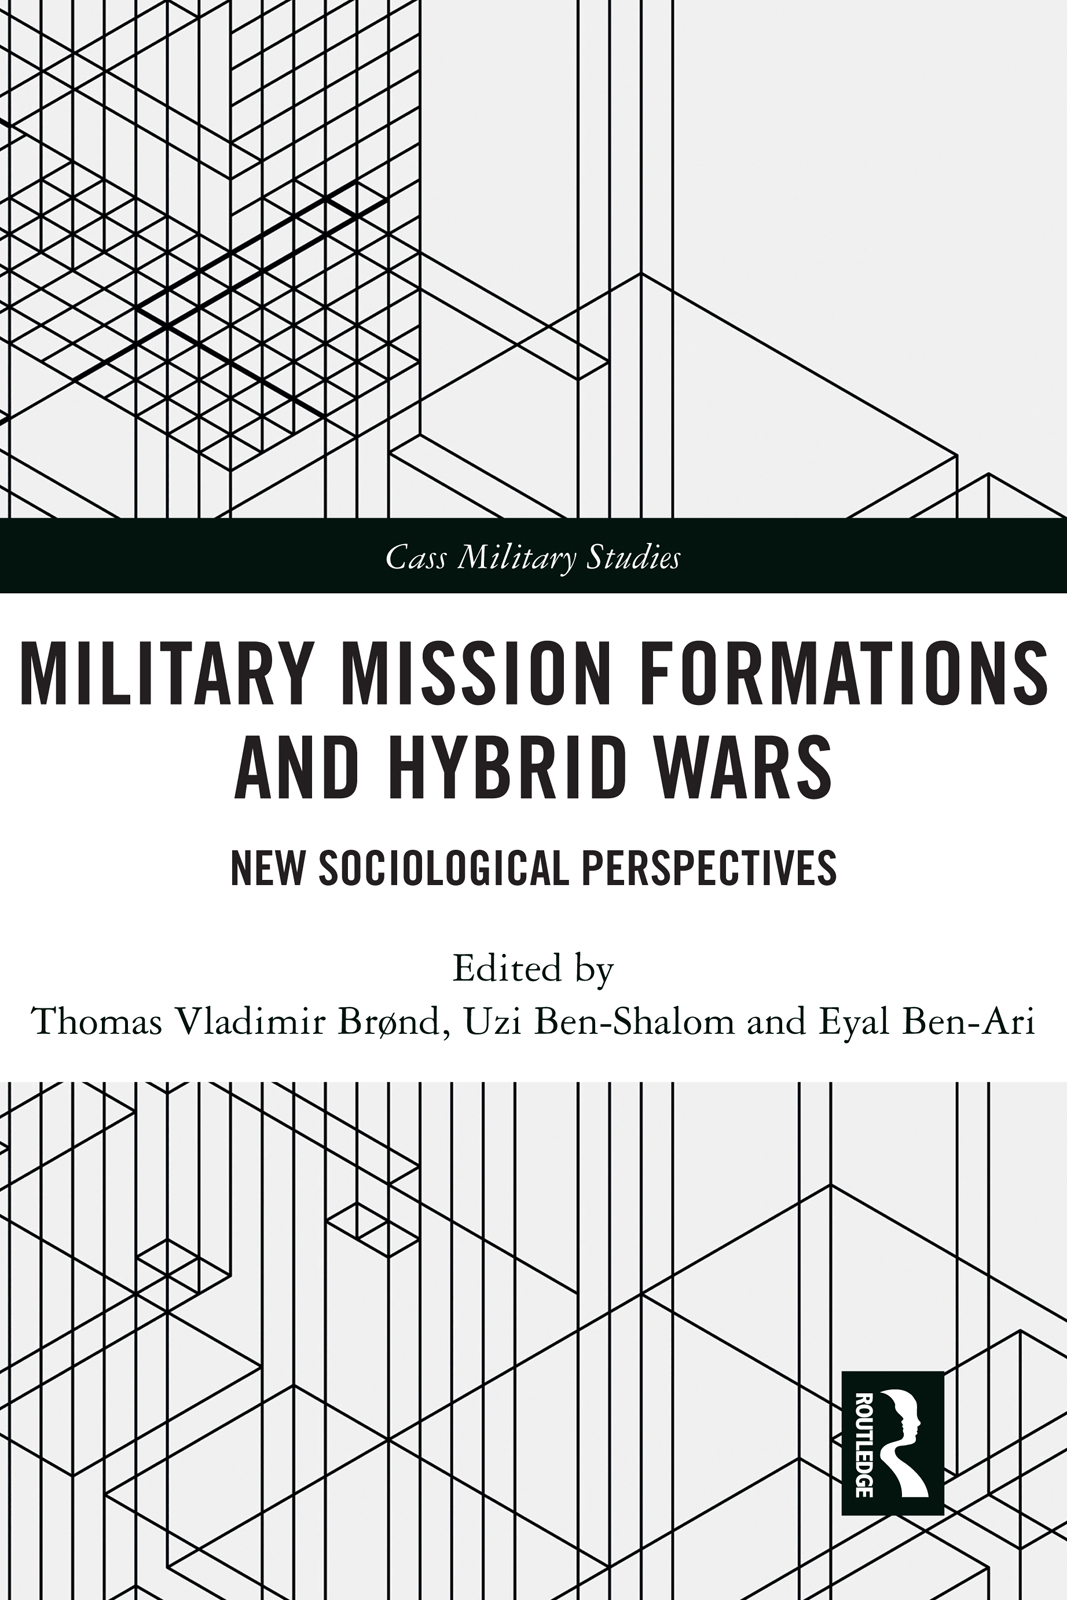 Military Mission Formations and Hybrid Wars